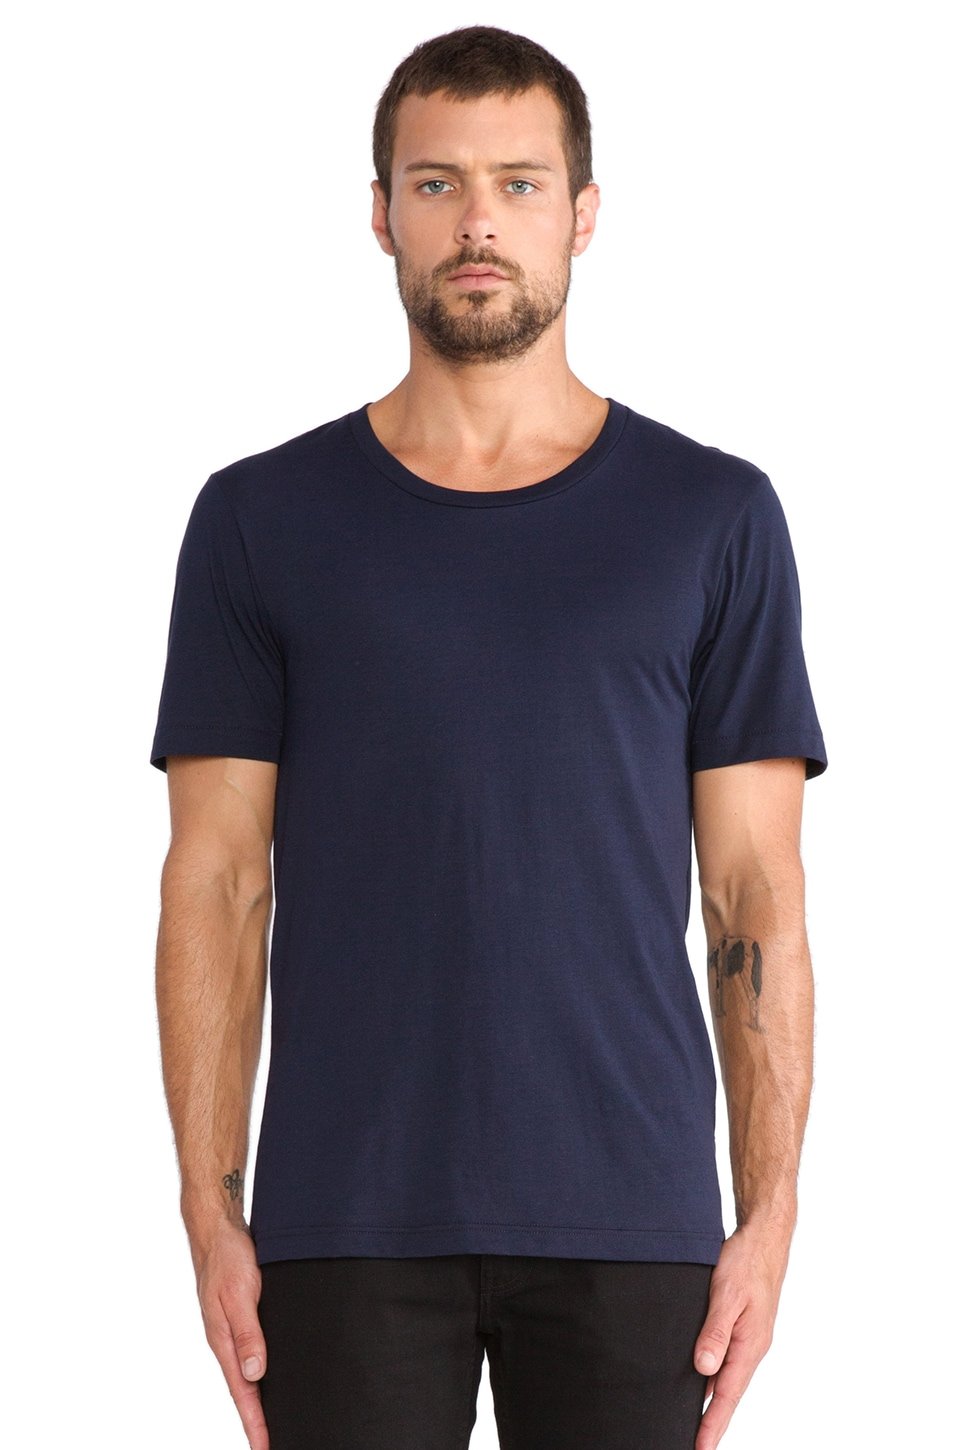 BLK DNM T-Shirt 3 in Navy Blue